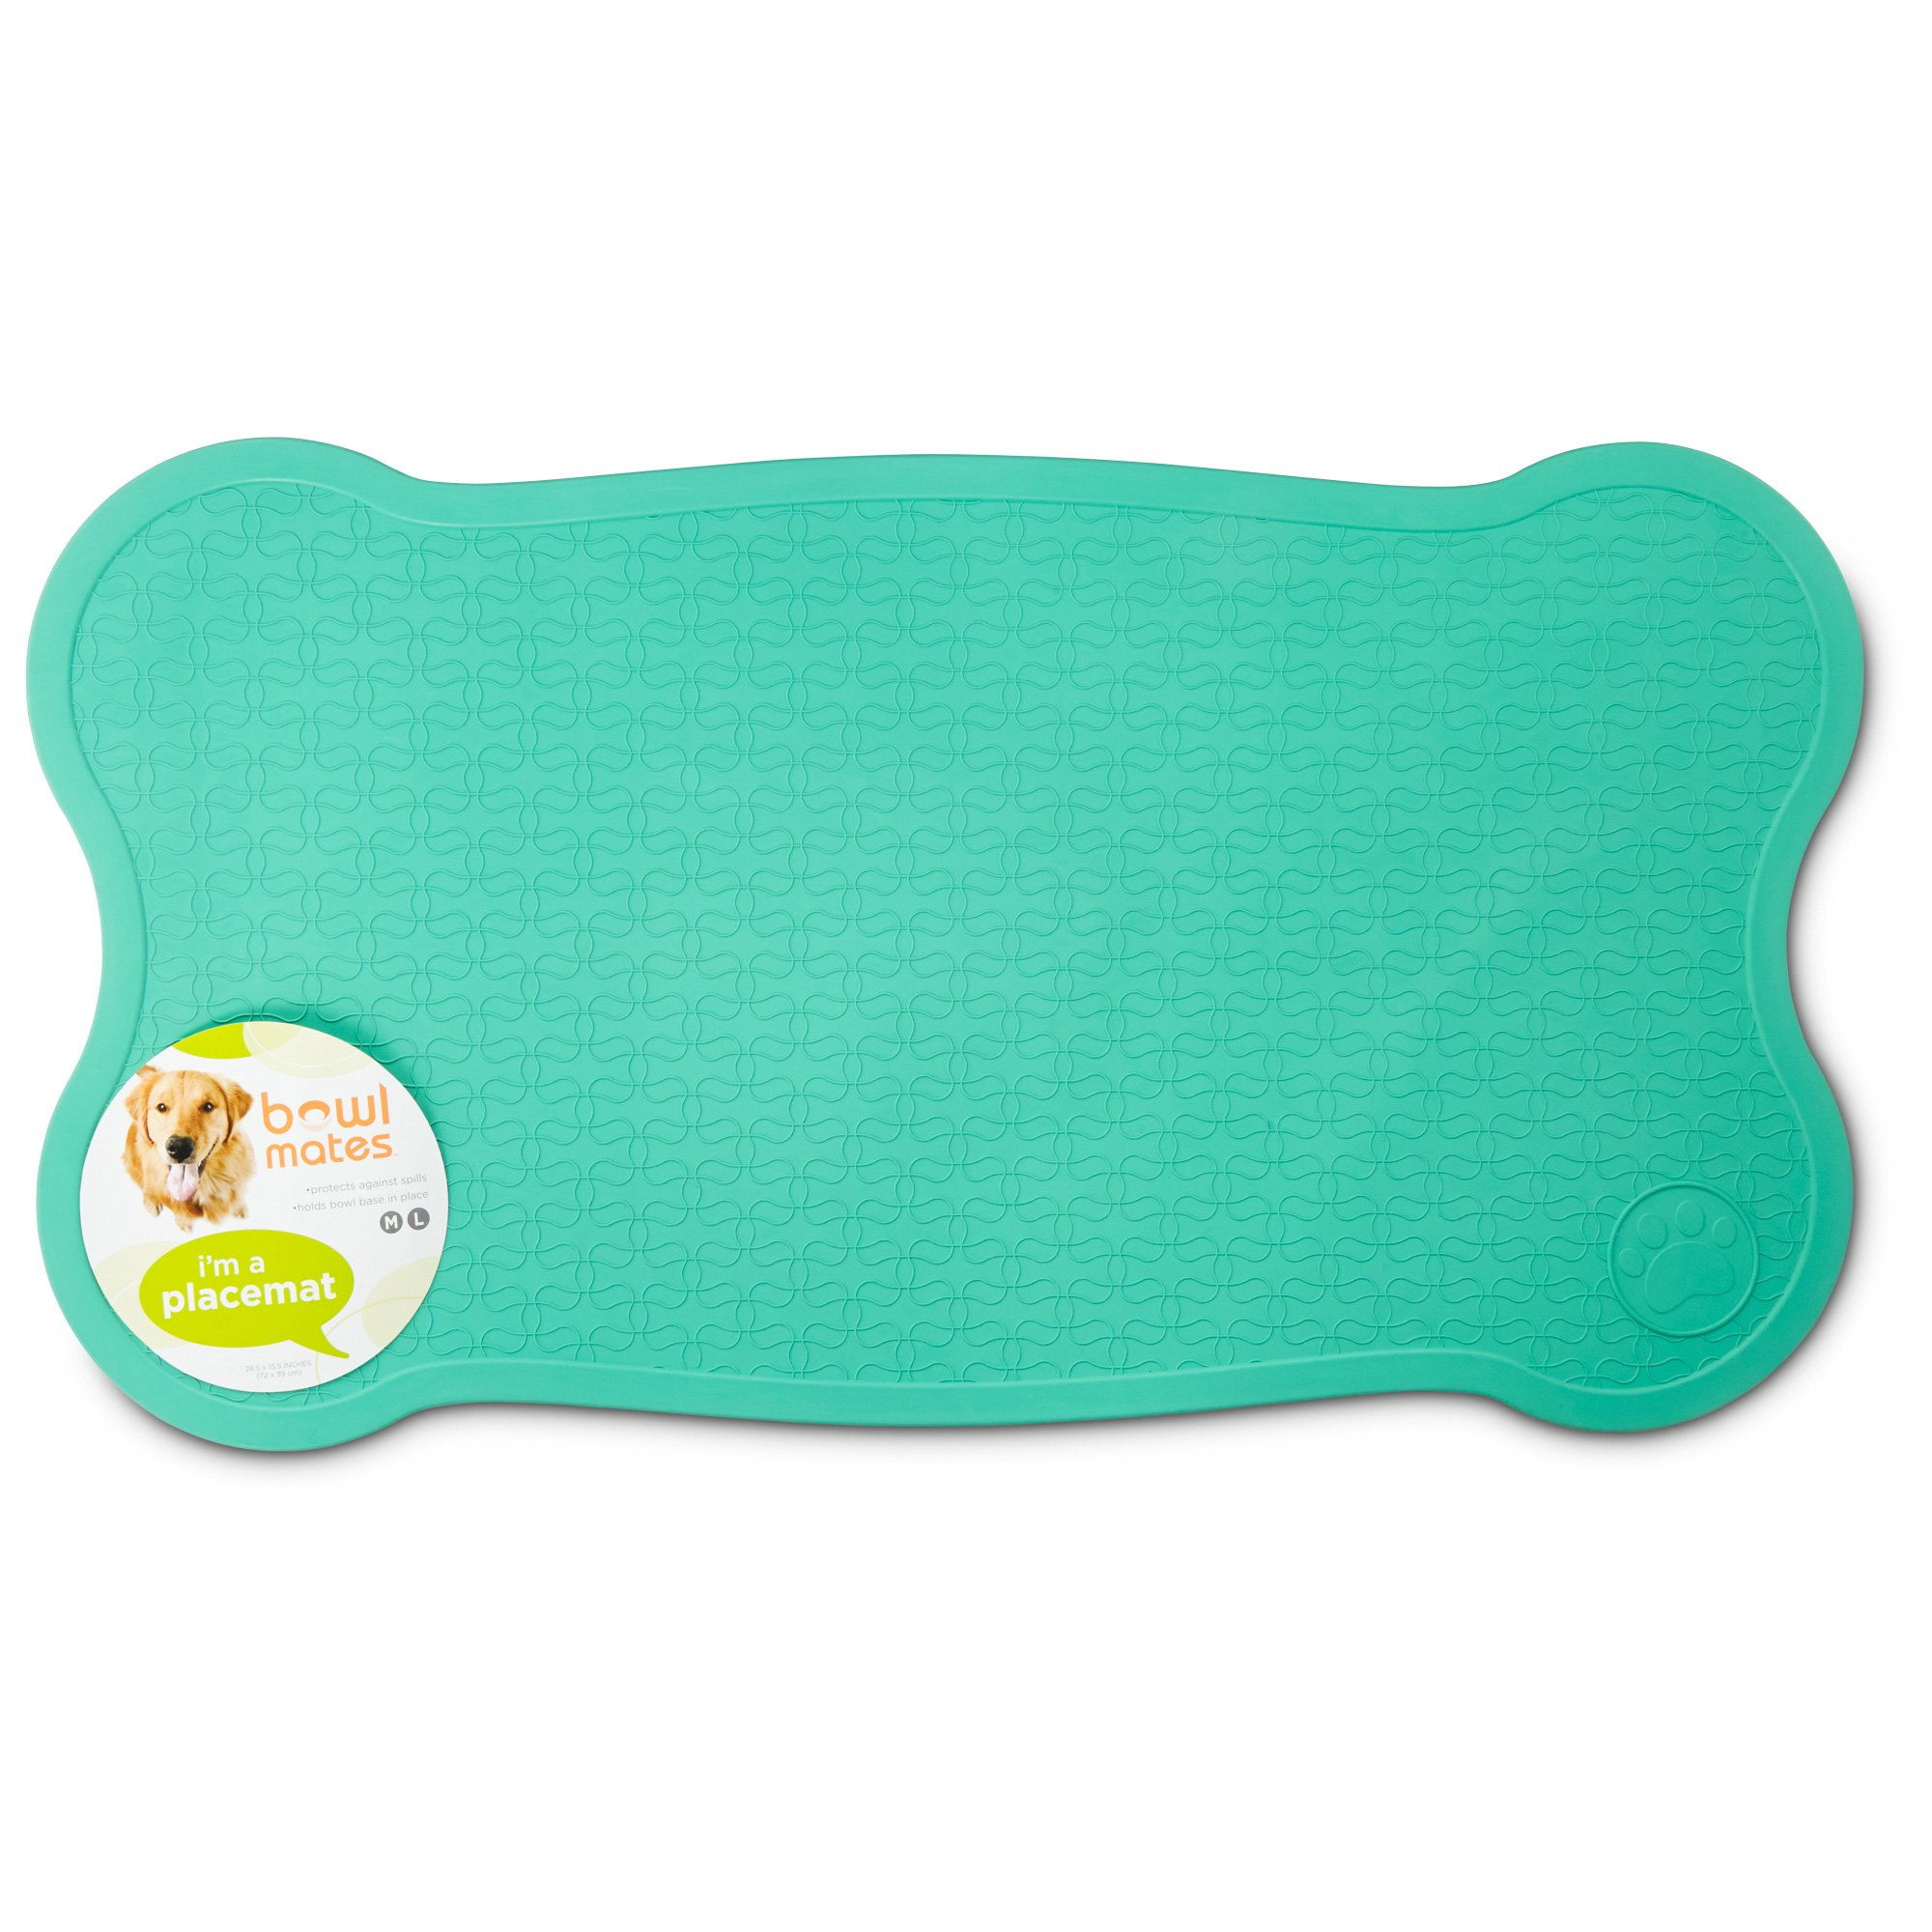 Dog Training Placemat: Bowlmates Mint Bone Placemat, Medium/Large